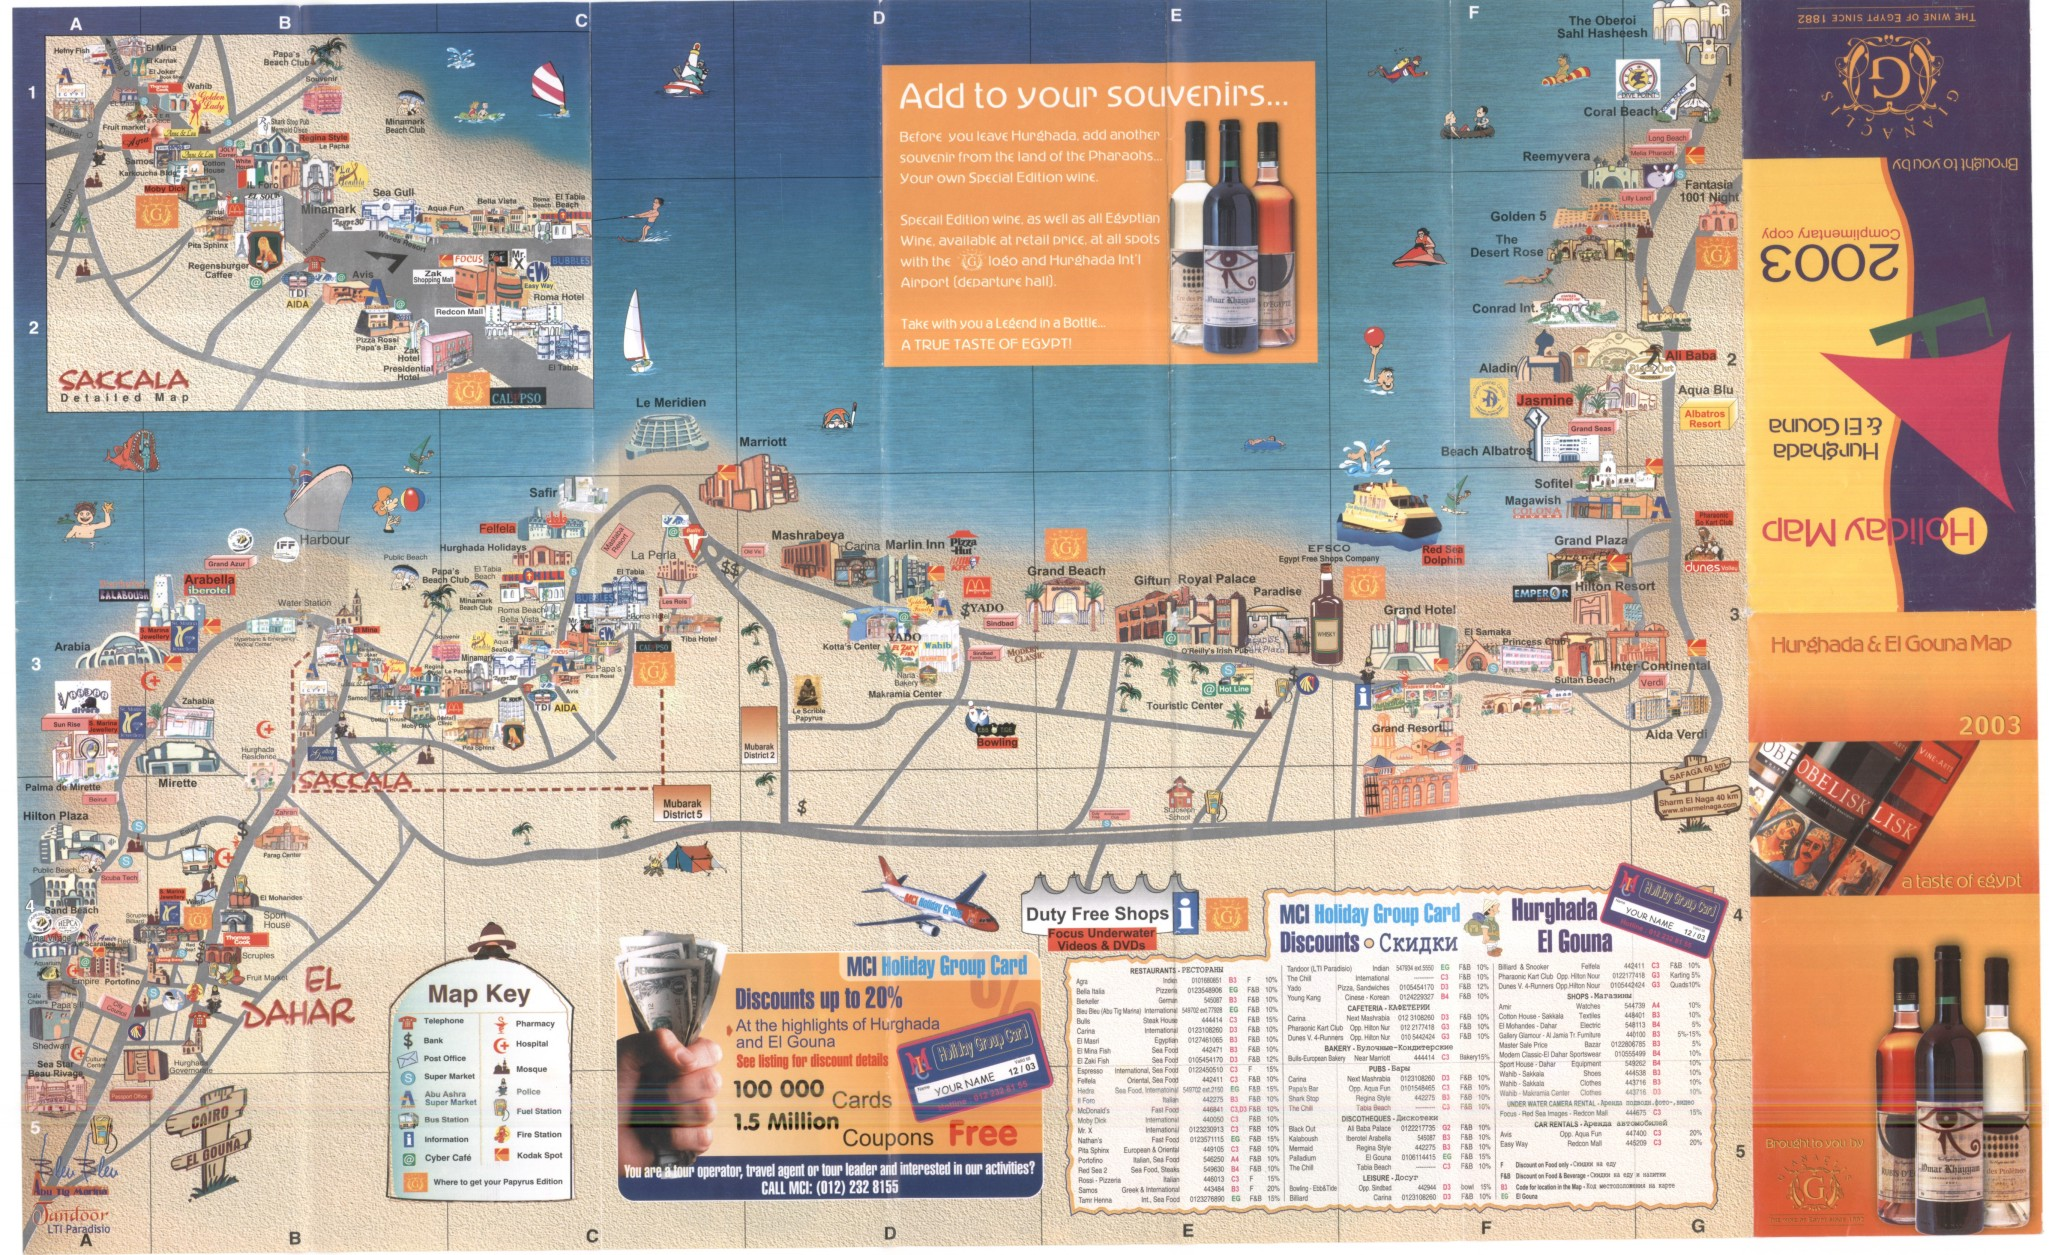 New Page - Map of egypt hotels